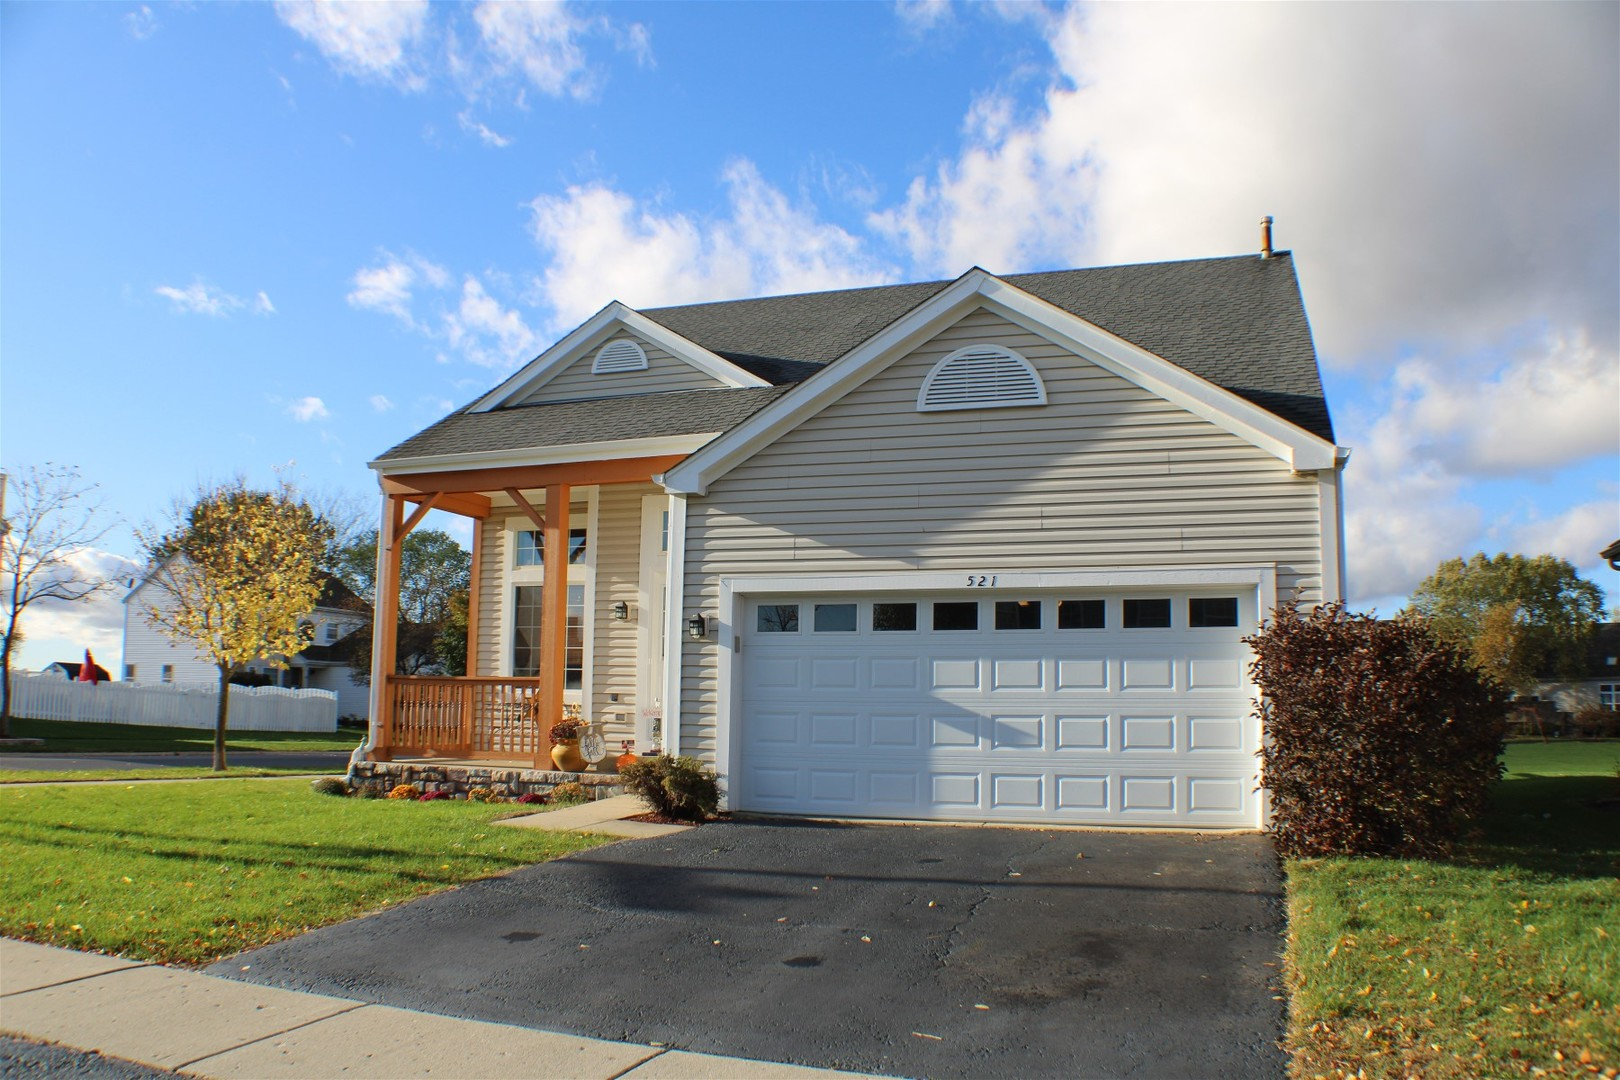 Photo for 521 Windermere Way, Lake In The Hills, IL 60156 (MLS # 10906316)